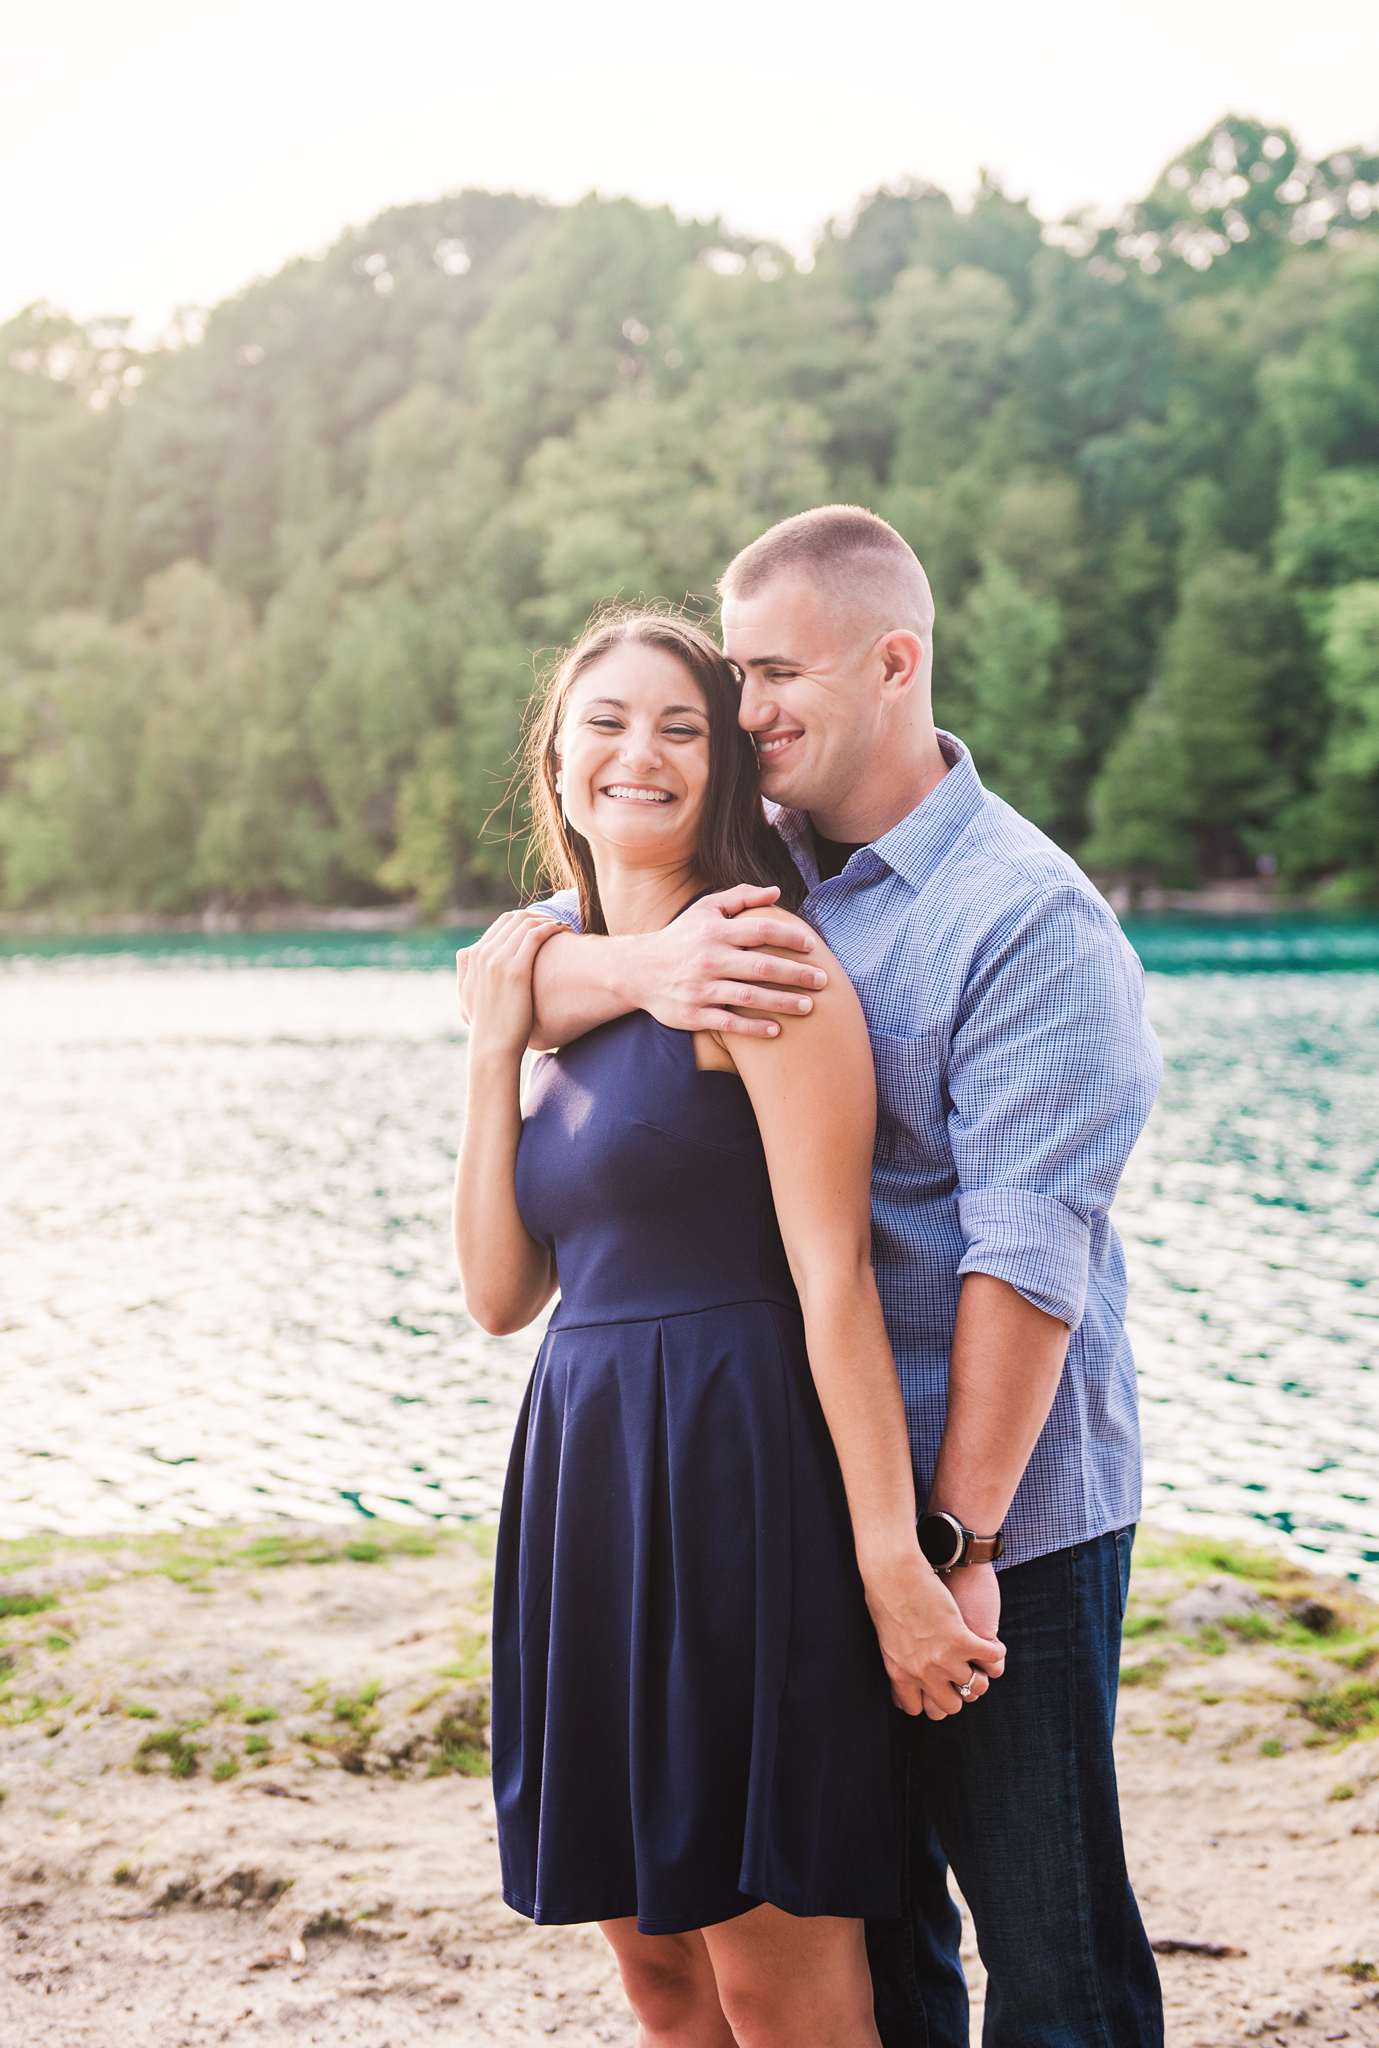 Green_Lakes_State_Park_Syracuse_Engagement_Session_JILL_STUDIO_Rochester_NY_Photographer_DSC_1035.jpg